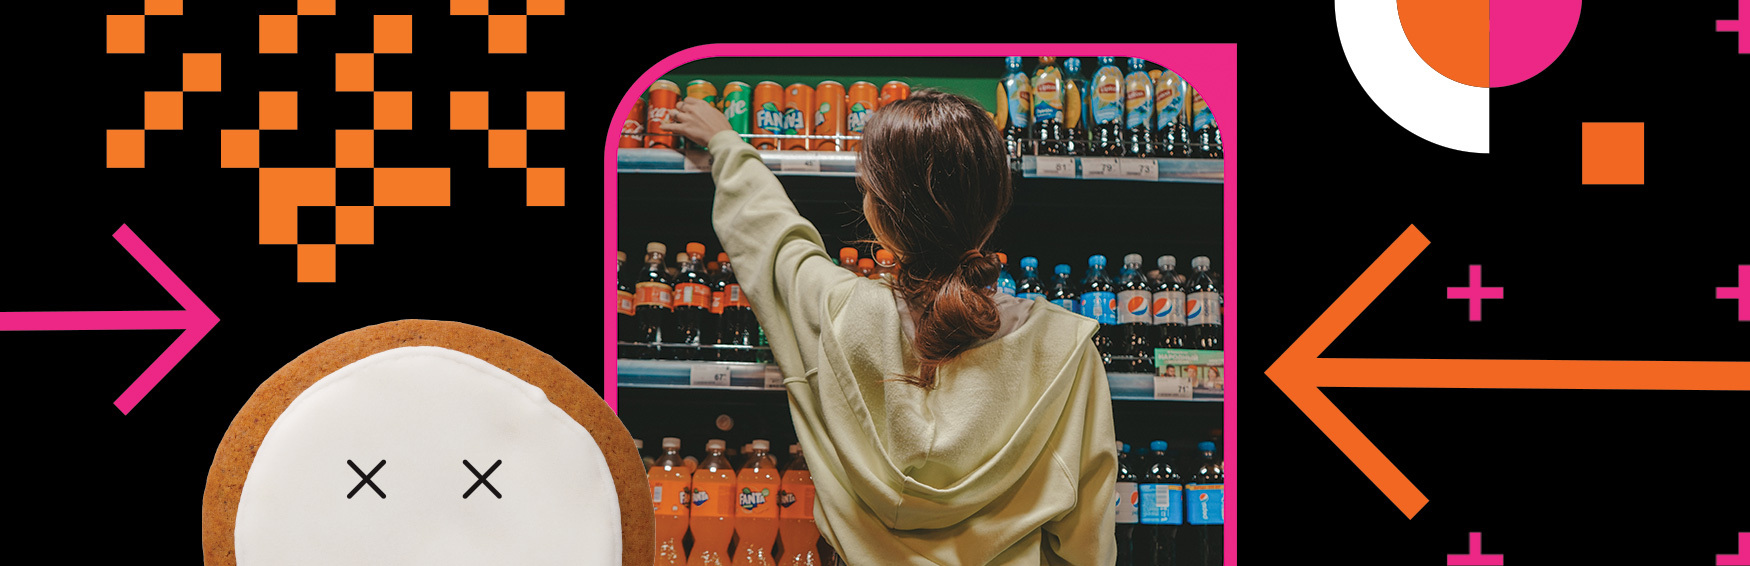 Your 5 Biggest Questions About the Future of CPG Marketing Answered